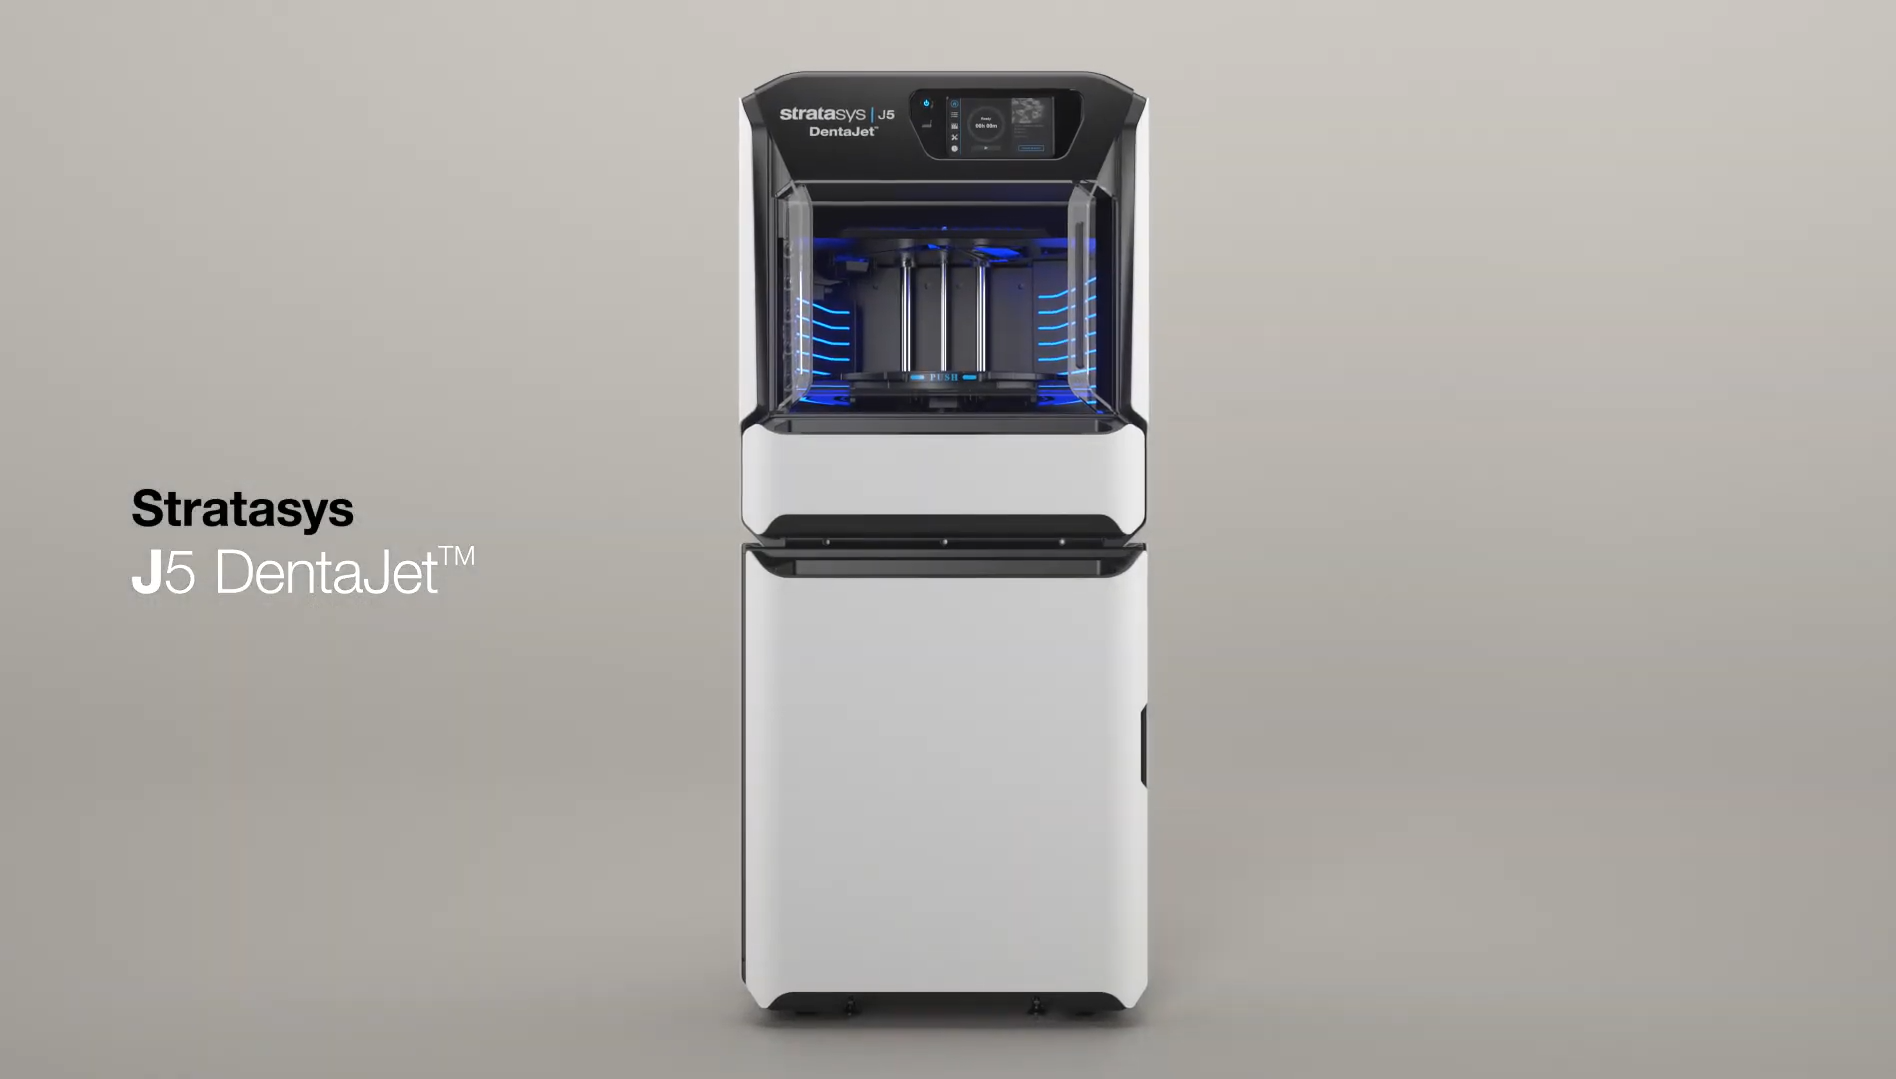 The Stratasys J5 DentaJet 3D printer. Photo via Stratasys.